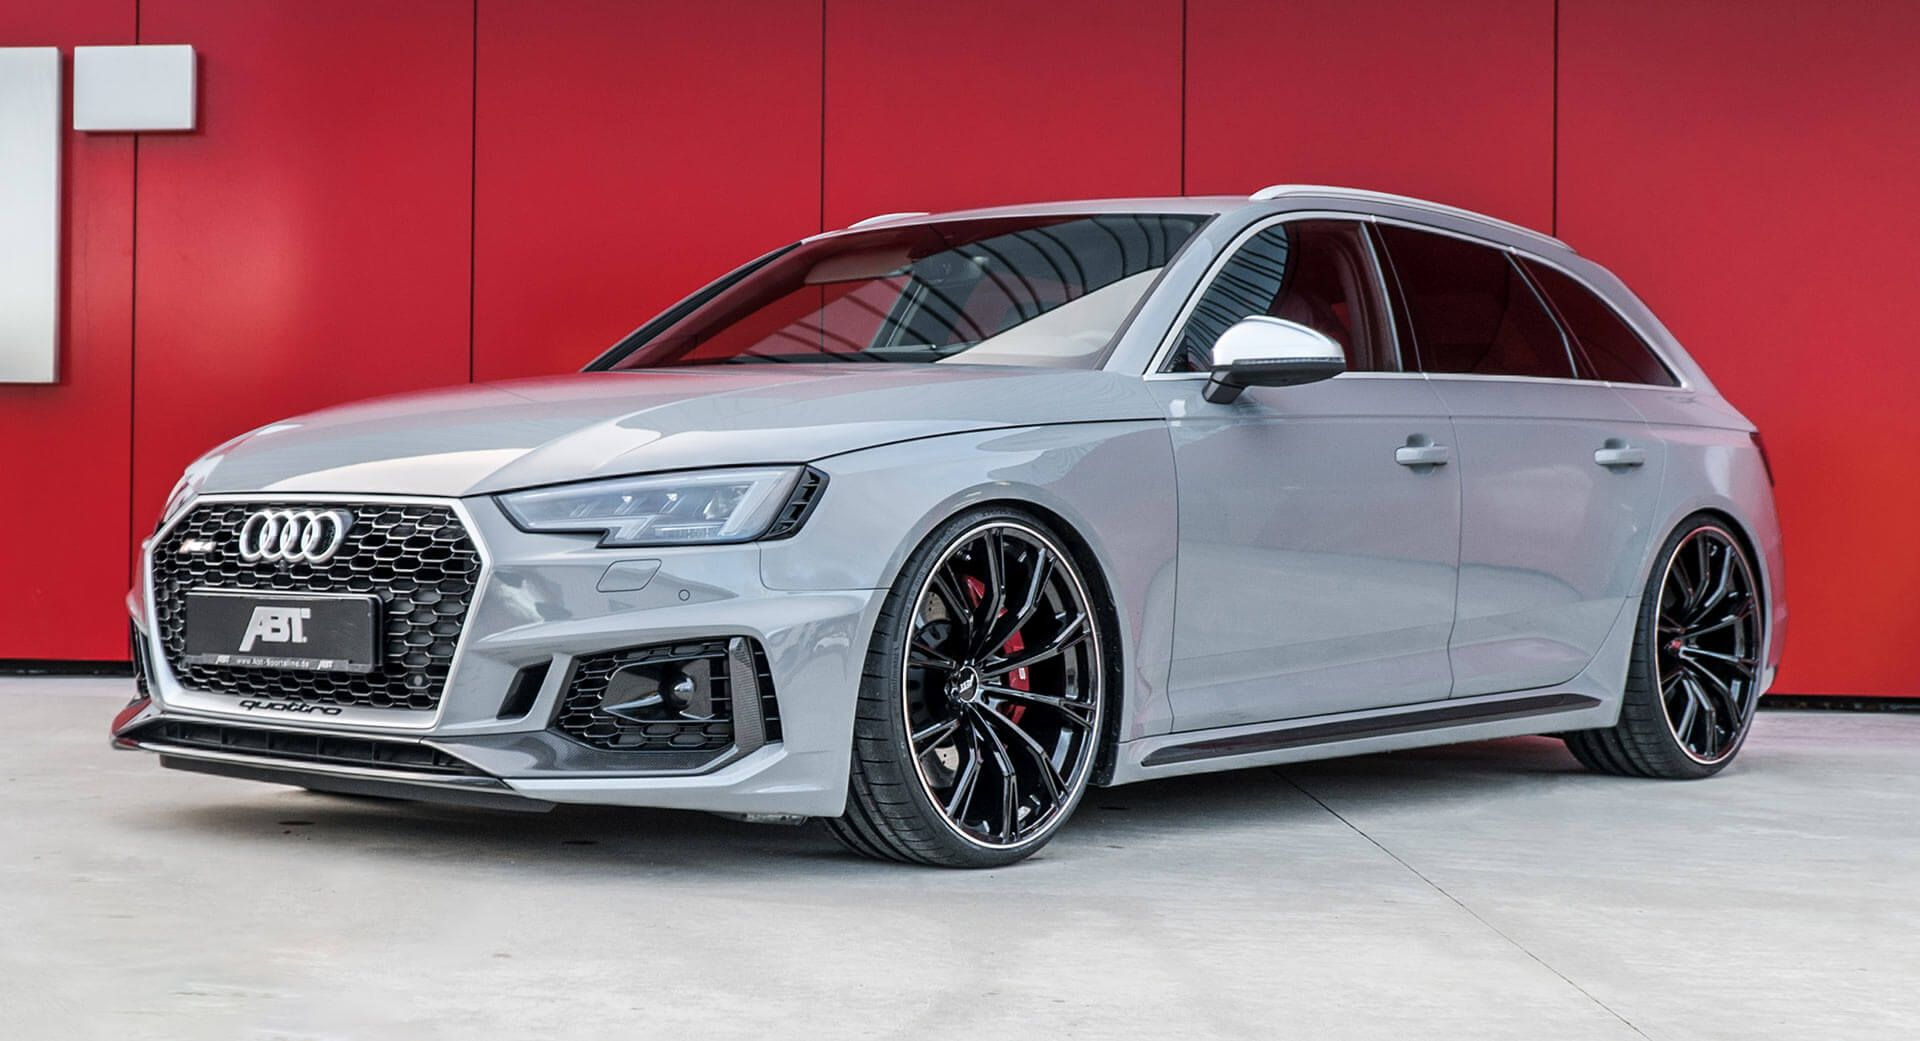 Abt Gives Us 60 More Reasons To Like The Audi Rs4 Avant Carscoops Audi Rs Rs4 Avant Audi Rs4 Avant